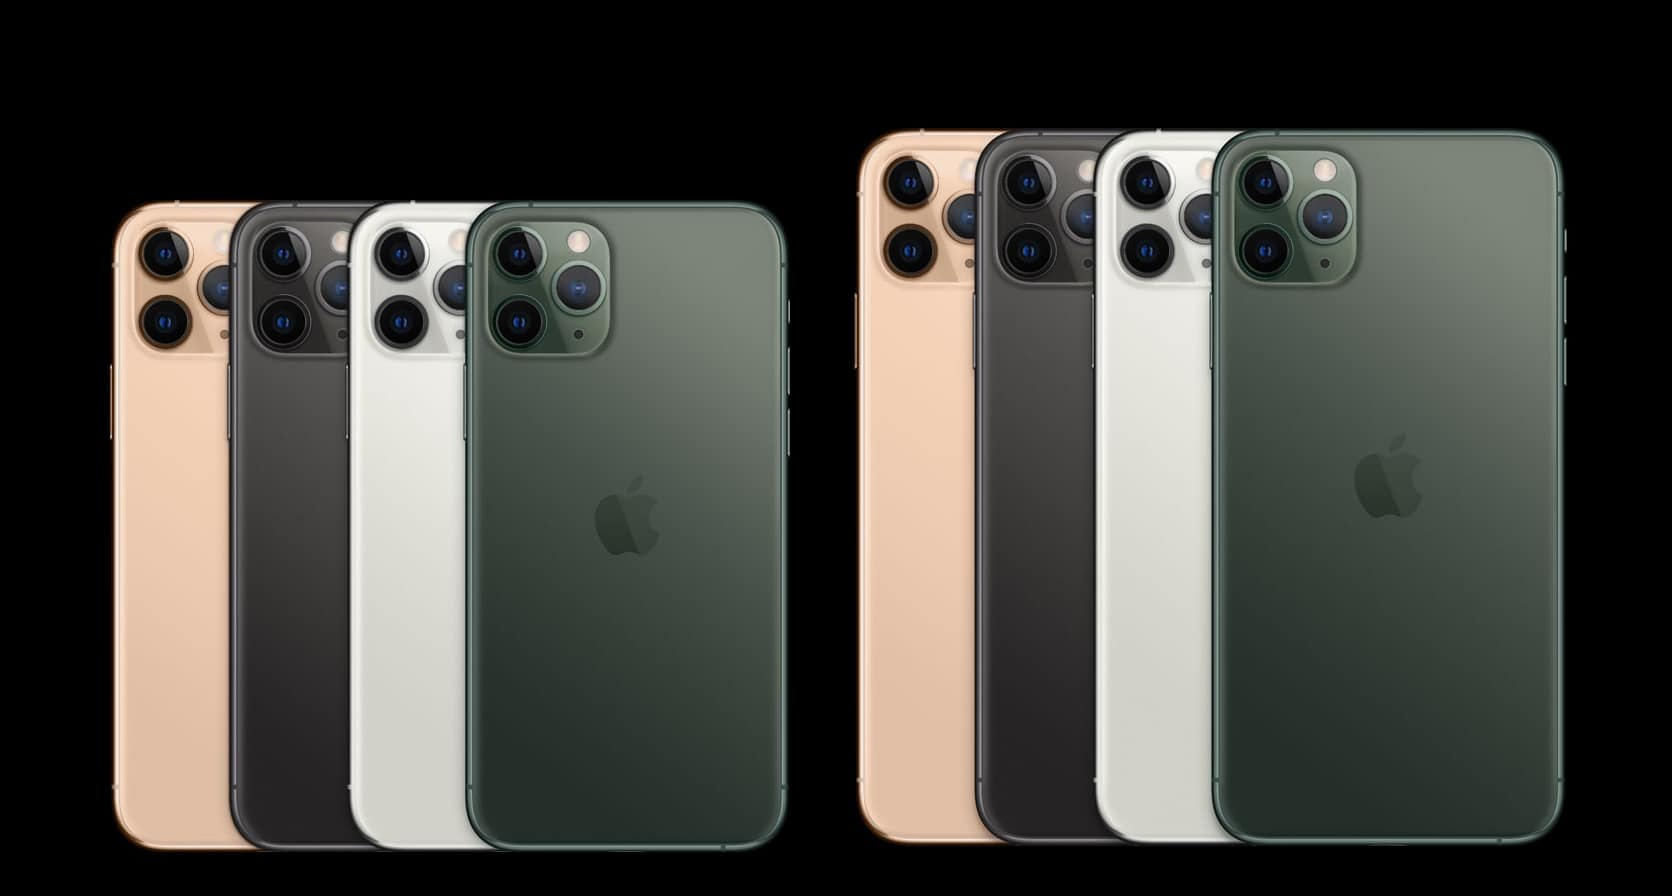 Matte finishes are back in with iPhone 11 Pro.